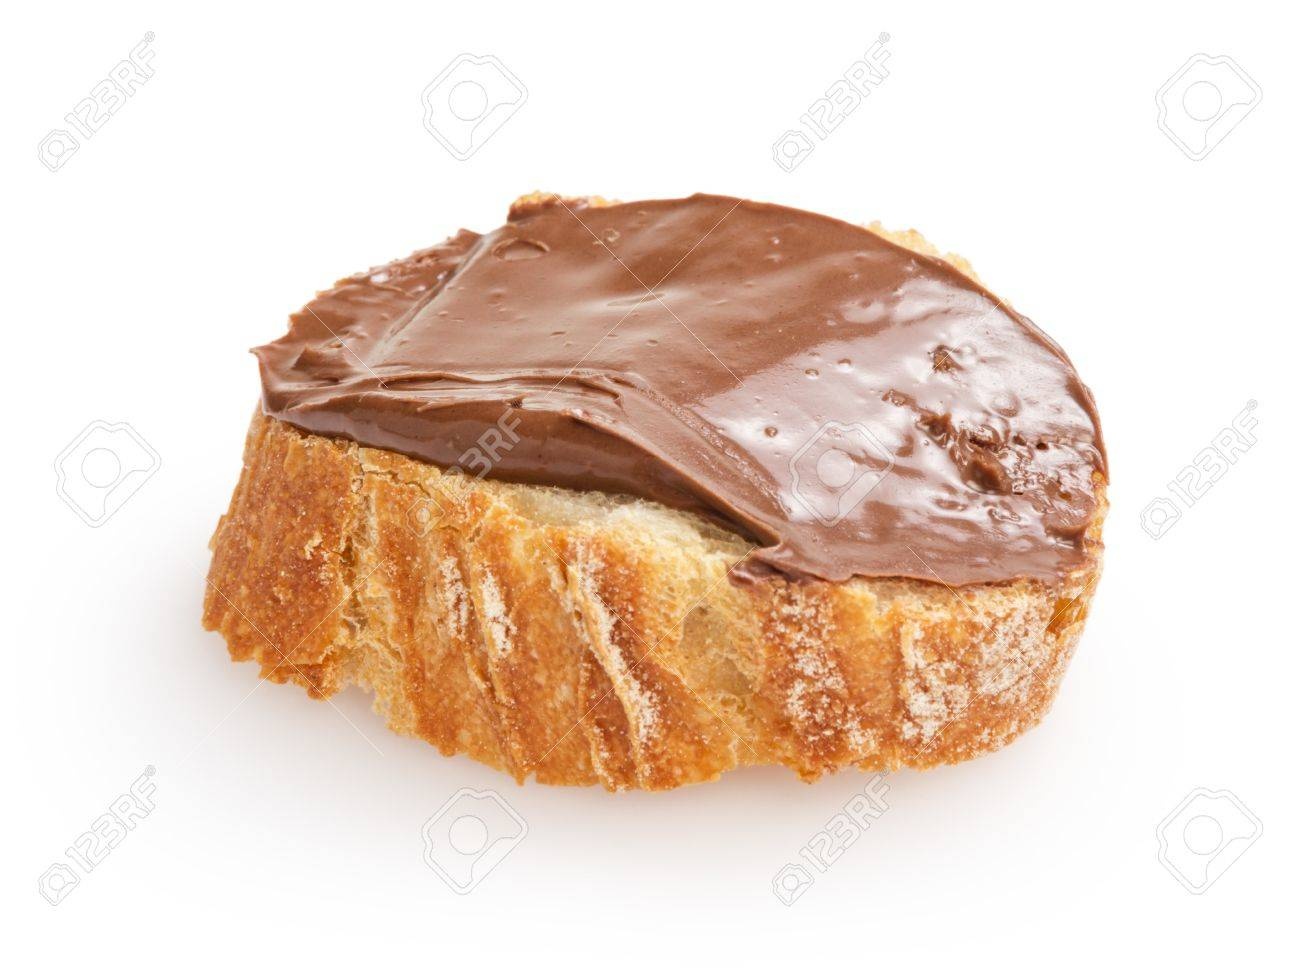 baguette slice spread with nut-choco paste, isolated on white Stock Photo - 18464185